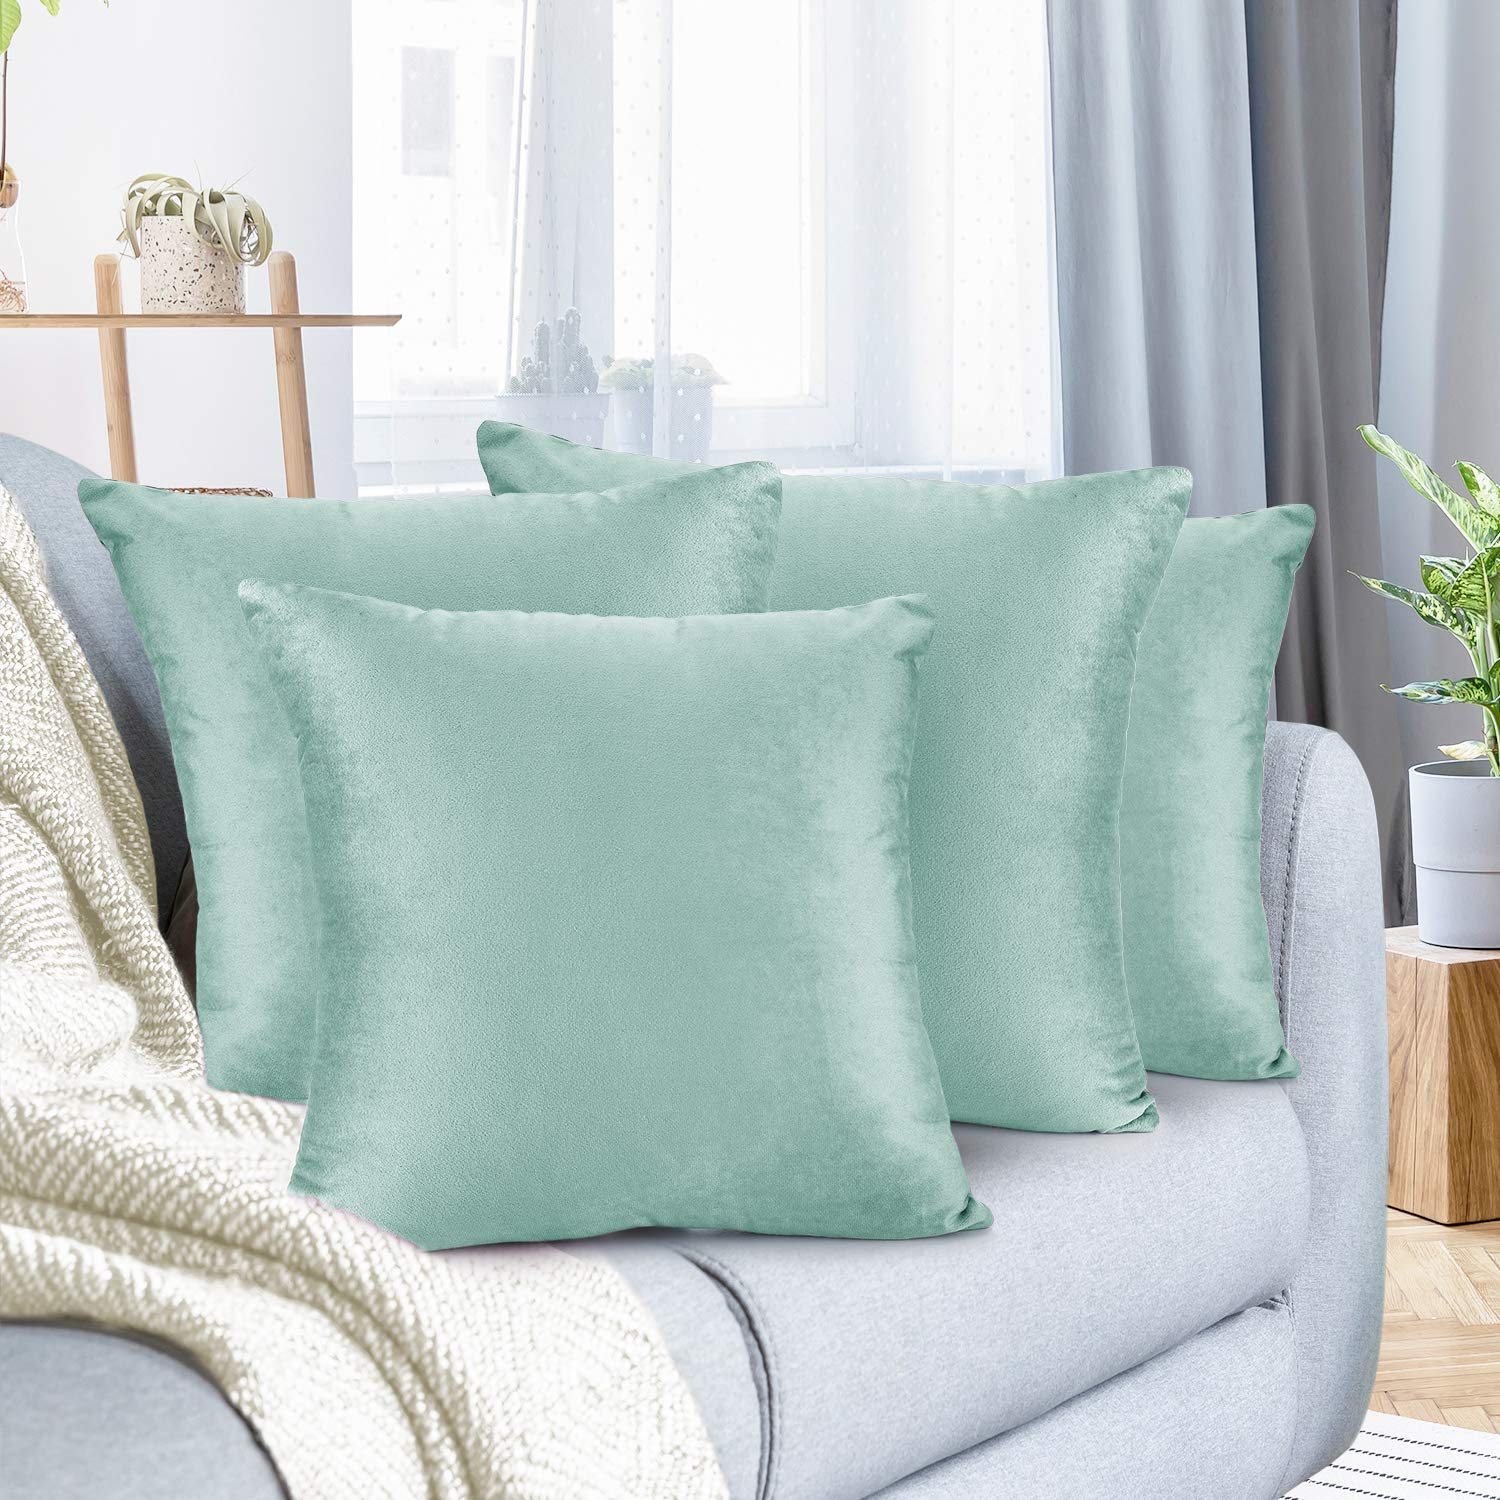 """Nestl Bedding Throw Pillow Cover 26"""" x 26"""" Soft Square Decorative Throw Pillow Covers Cozy Velvet Cushion Case for Sofa Couch Bedroom, Set of 4, Mint"""